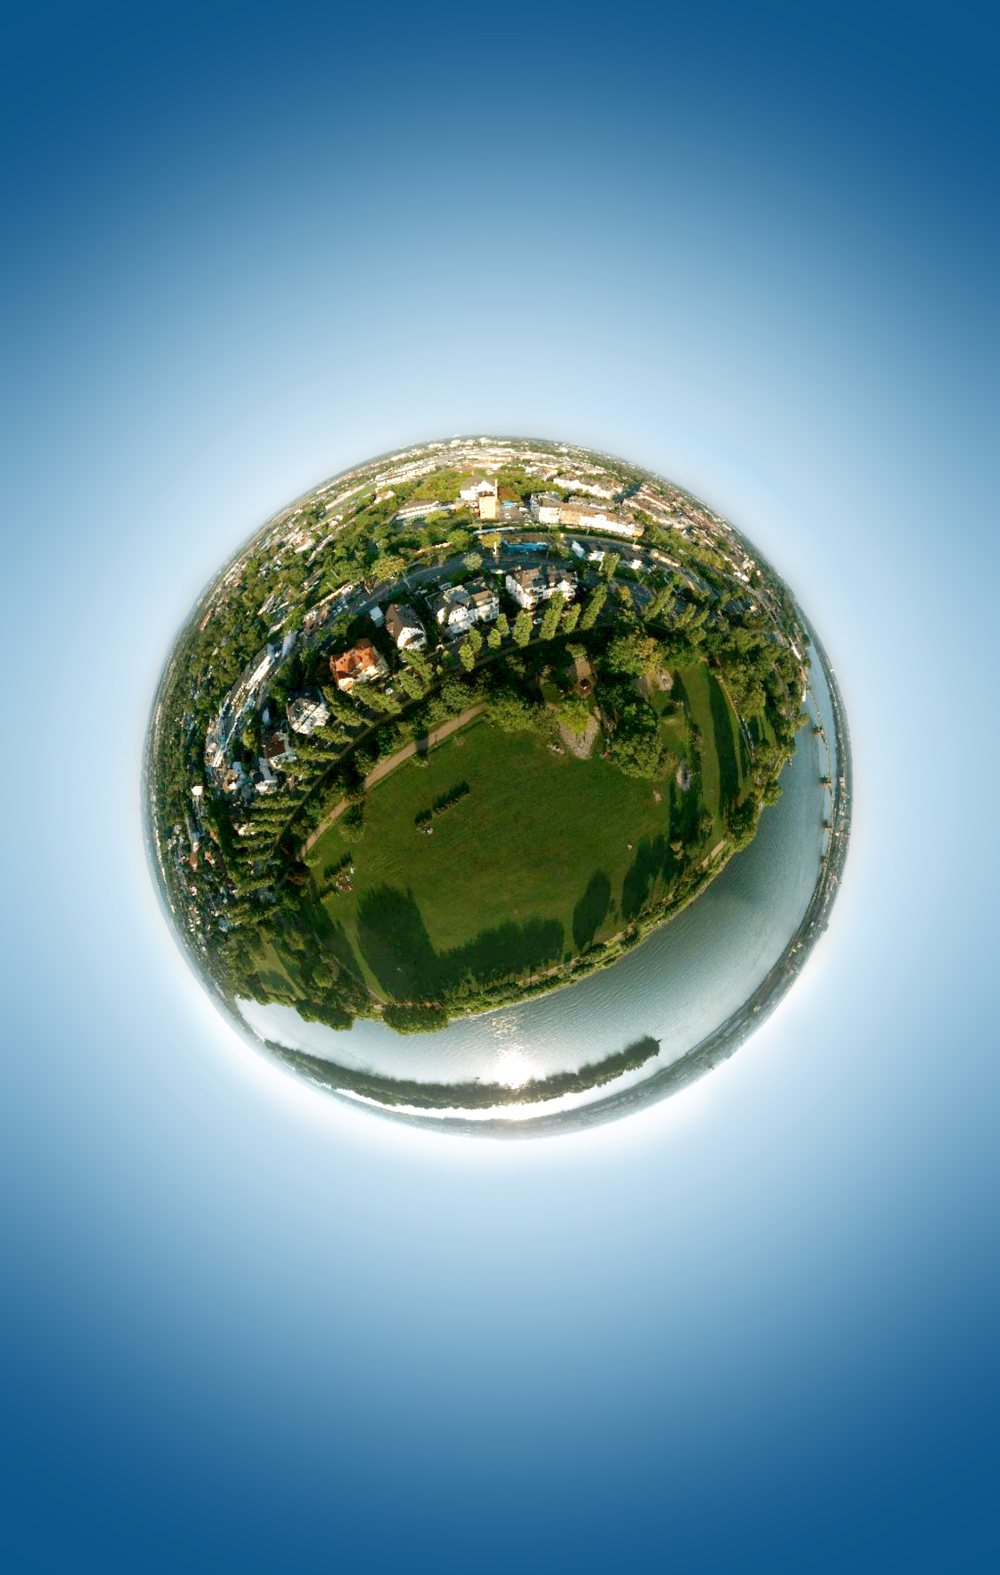 DJI Spark Sphere Mode